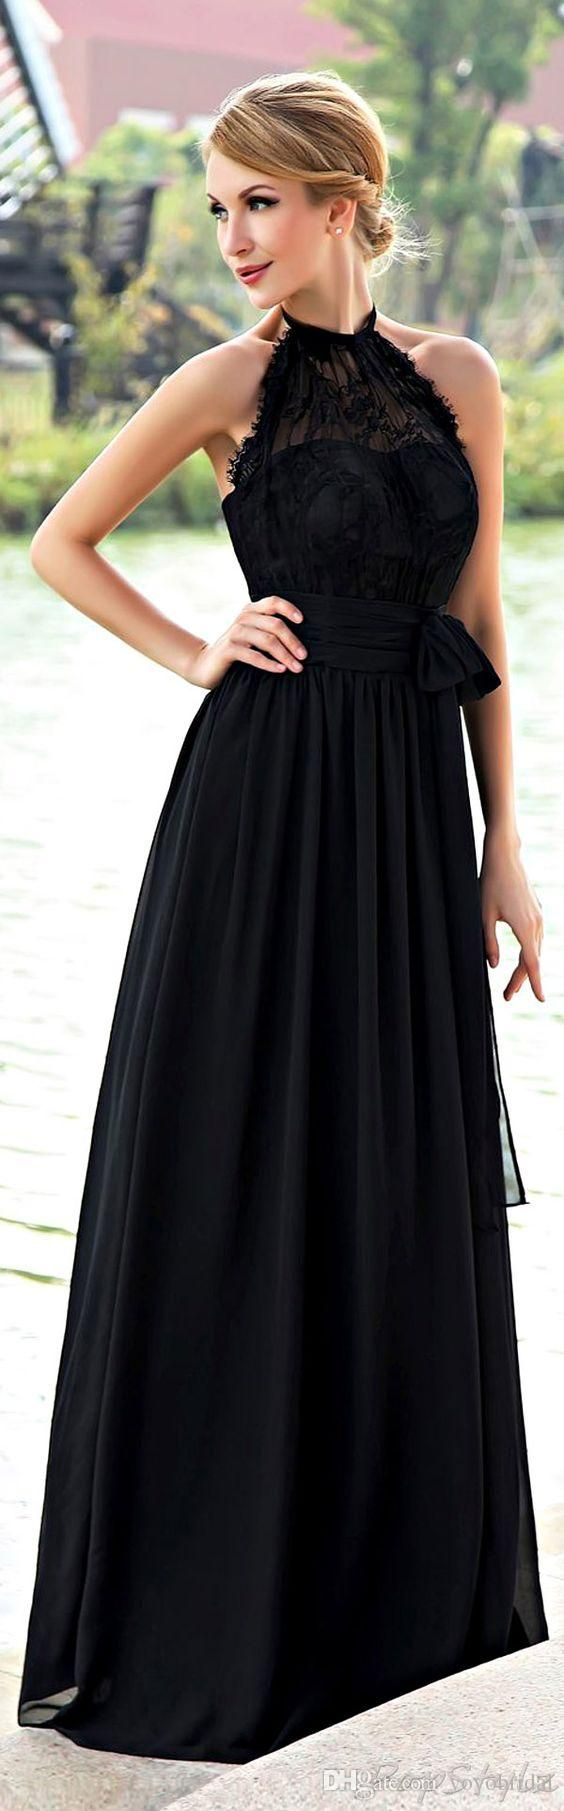 185 best bridesmaid dresses images on pinterest dress formal sexy black halter bridesmaid dresses beach empire chiffon lace pleated floor ombrellifo Image collections